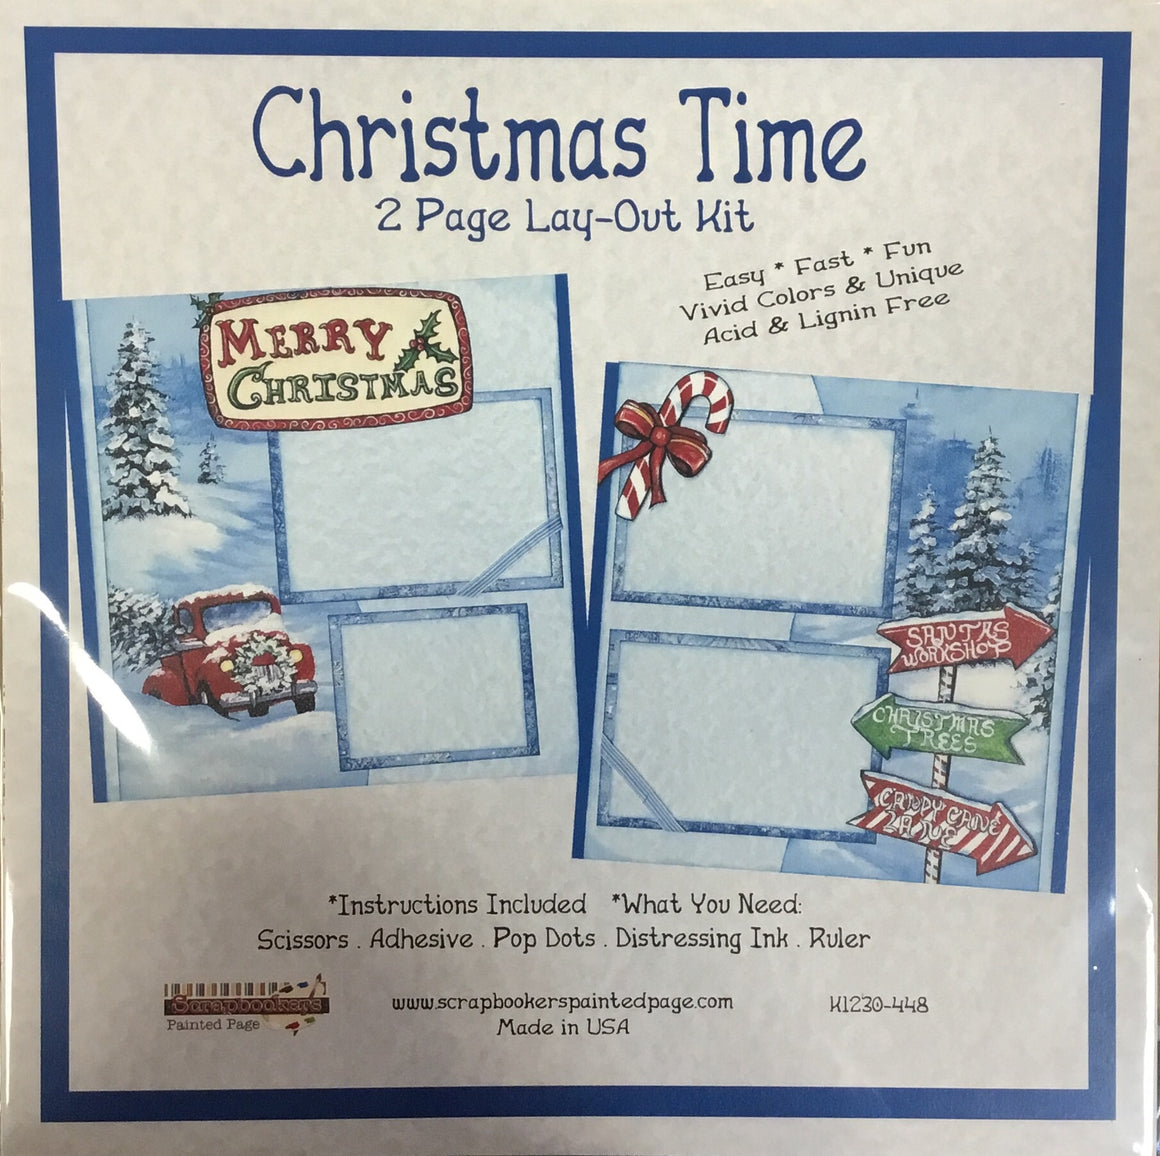 12x12 2 page layout kit Christmas Time